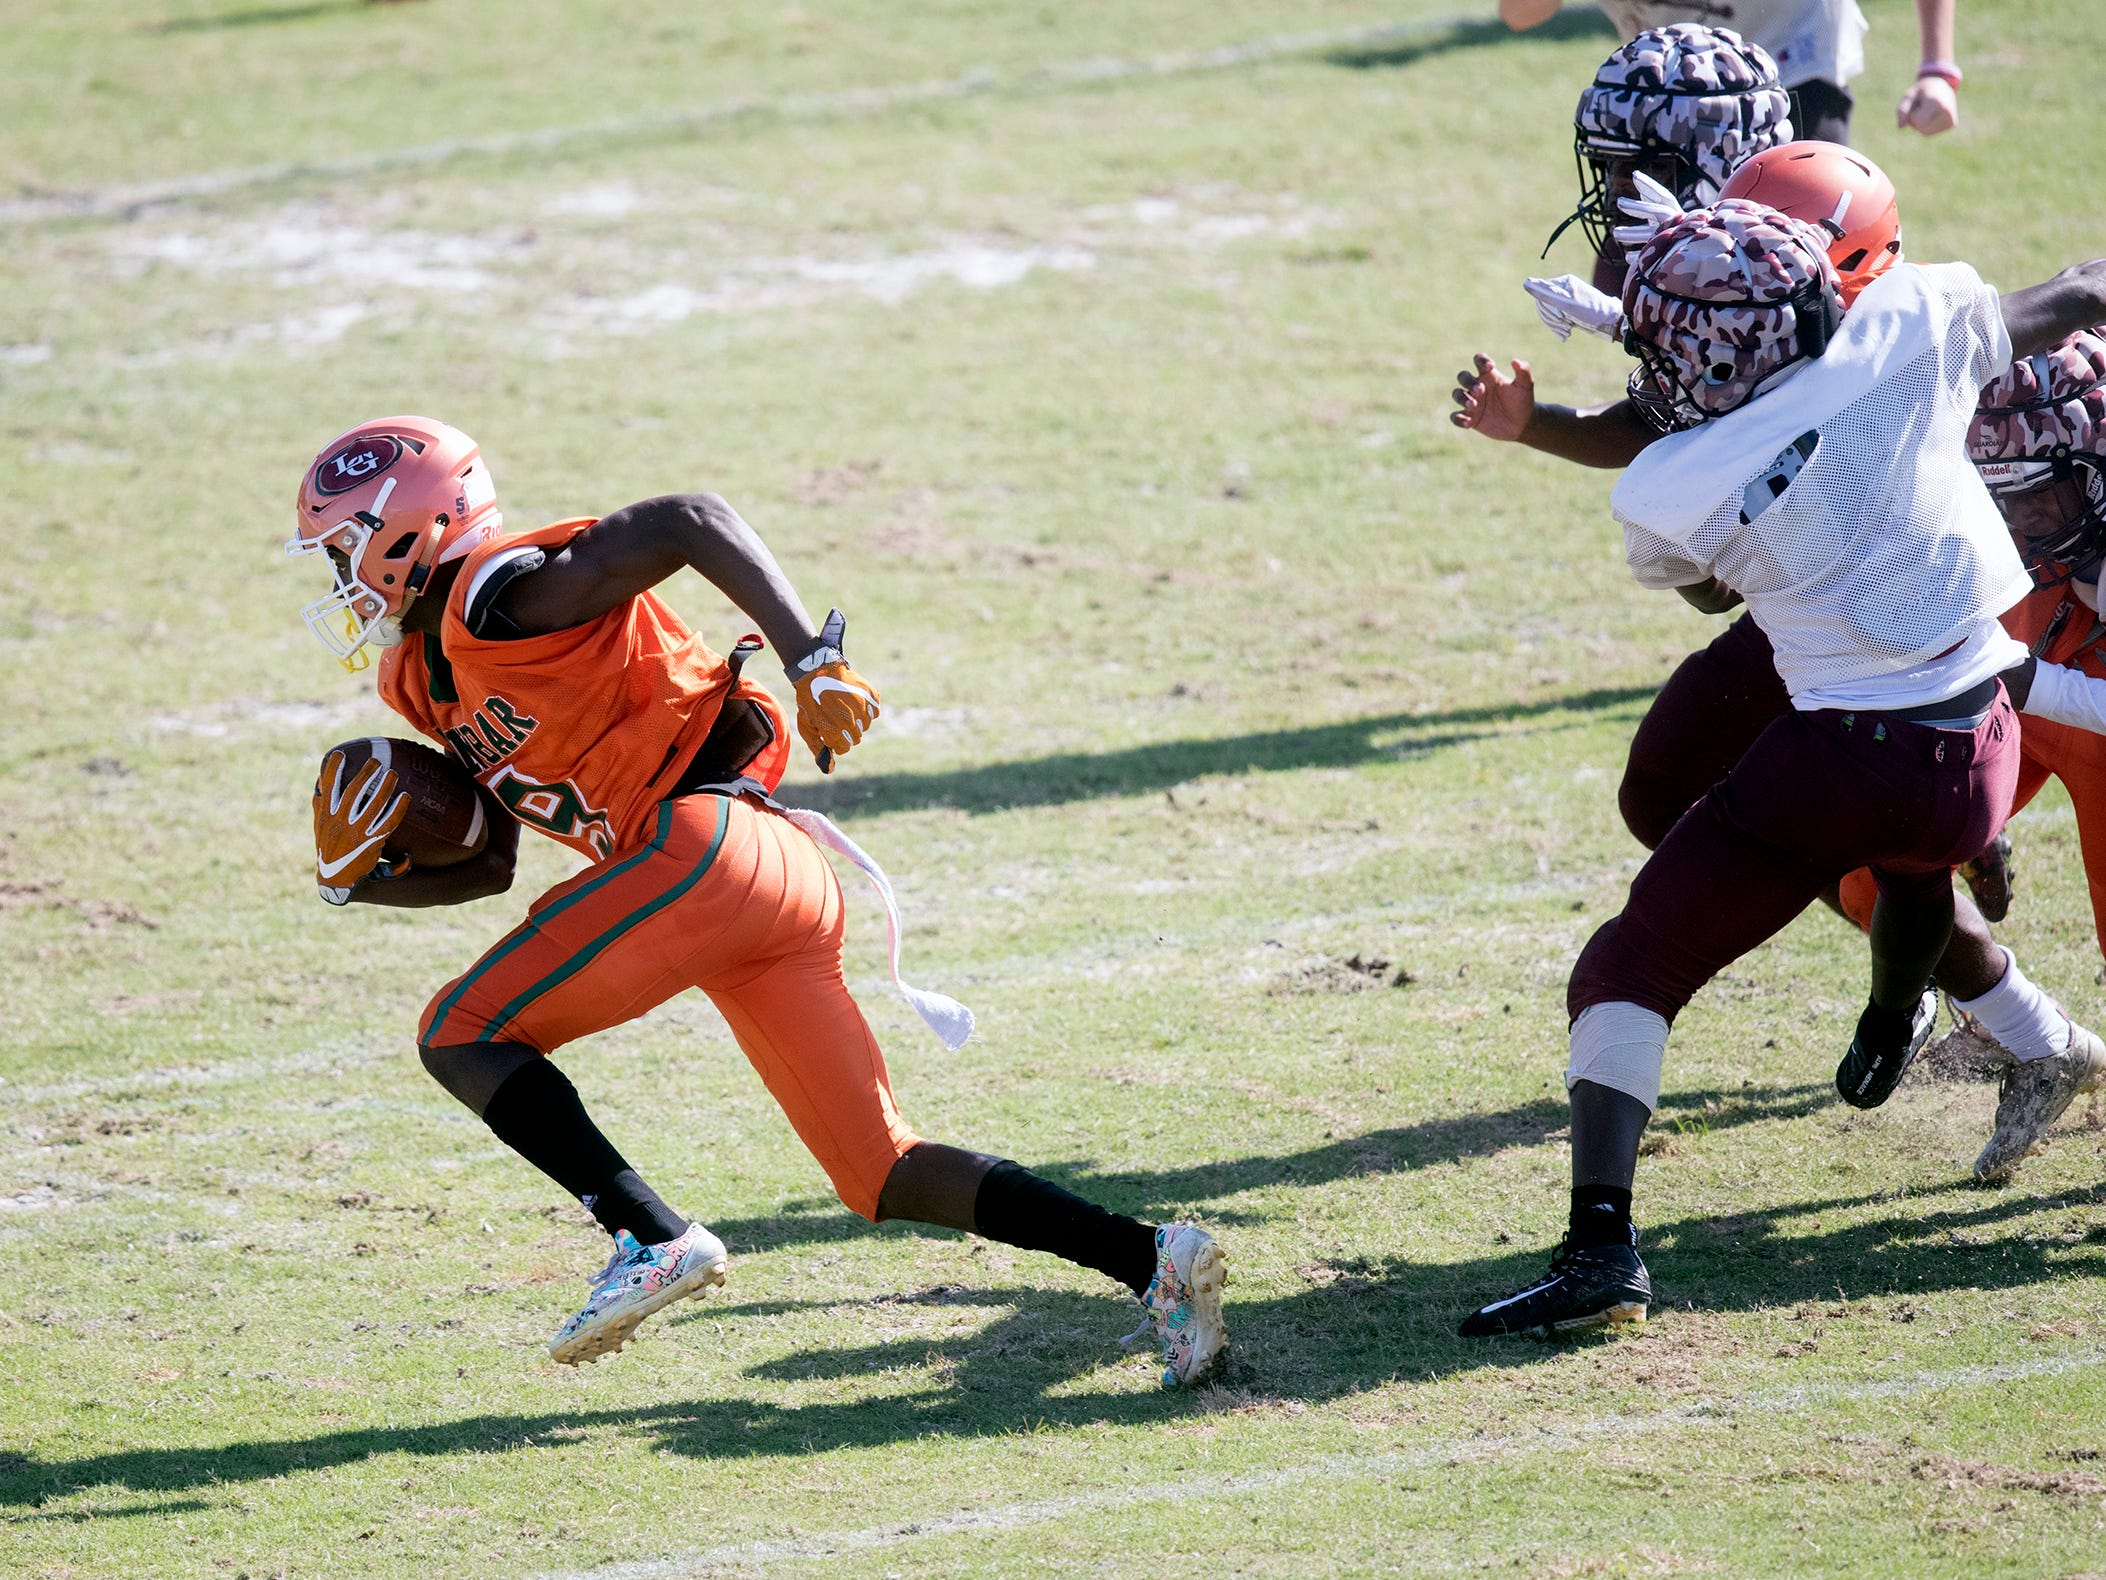 Dunbar High School's Greg Thomas, left, scores against Riverdale during a joint scrimmage on Saturday at North Fort Myers High School. Venice and North Fort Myers also played in the scrimmage.